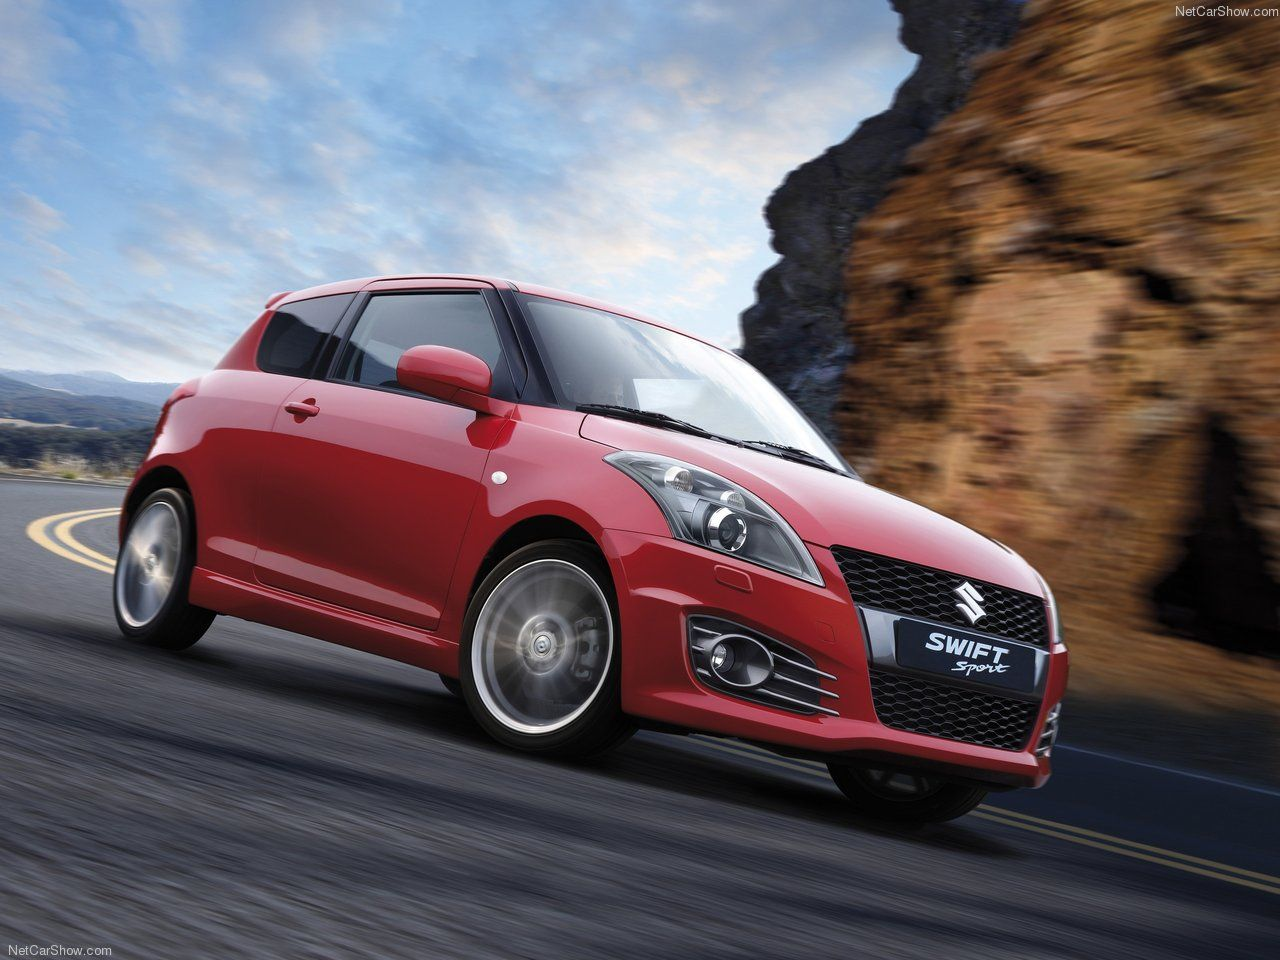 Suzuki swift sport 2013 pictures to pin on pinterest - Suzuki Swift